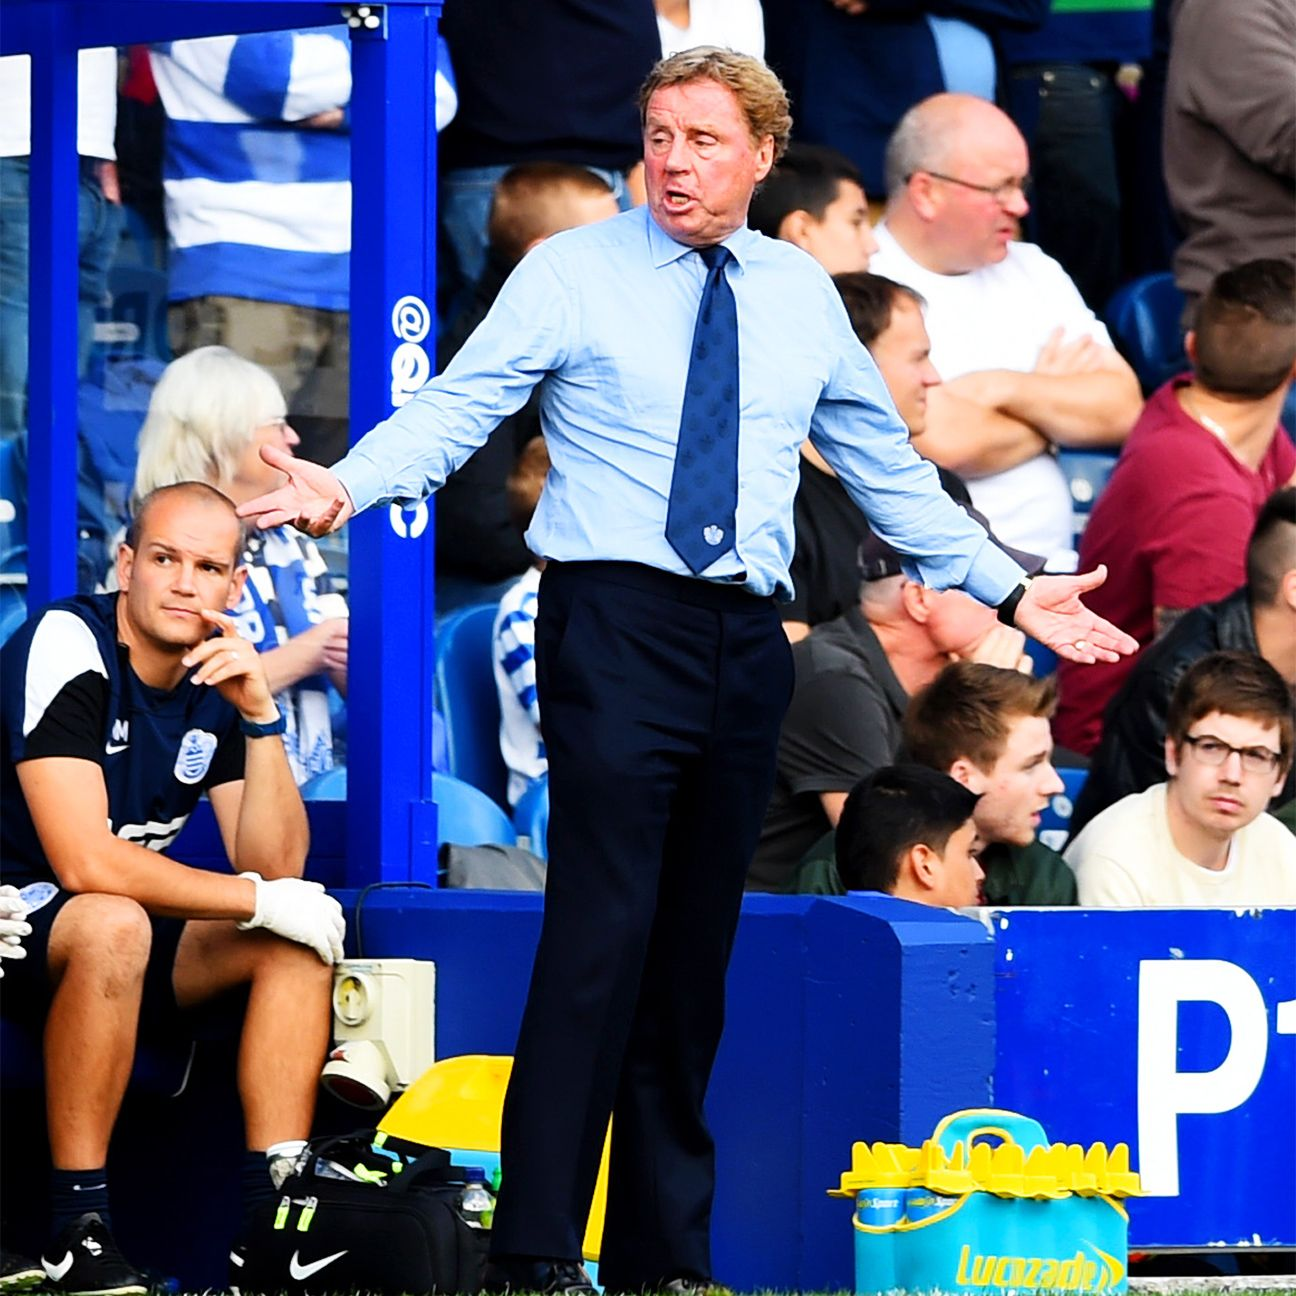 QPR boss Harry Redknapp pulled all the right strings, but still came out on the short end of the stick versus Liverpool.